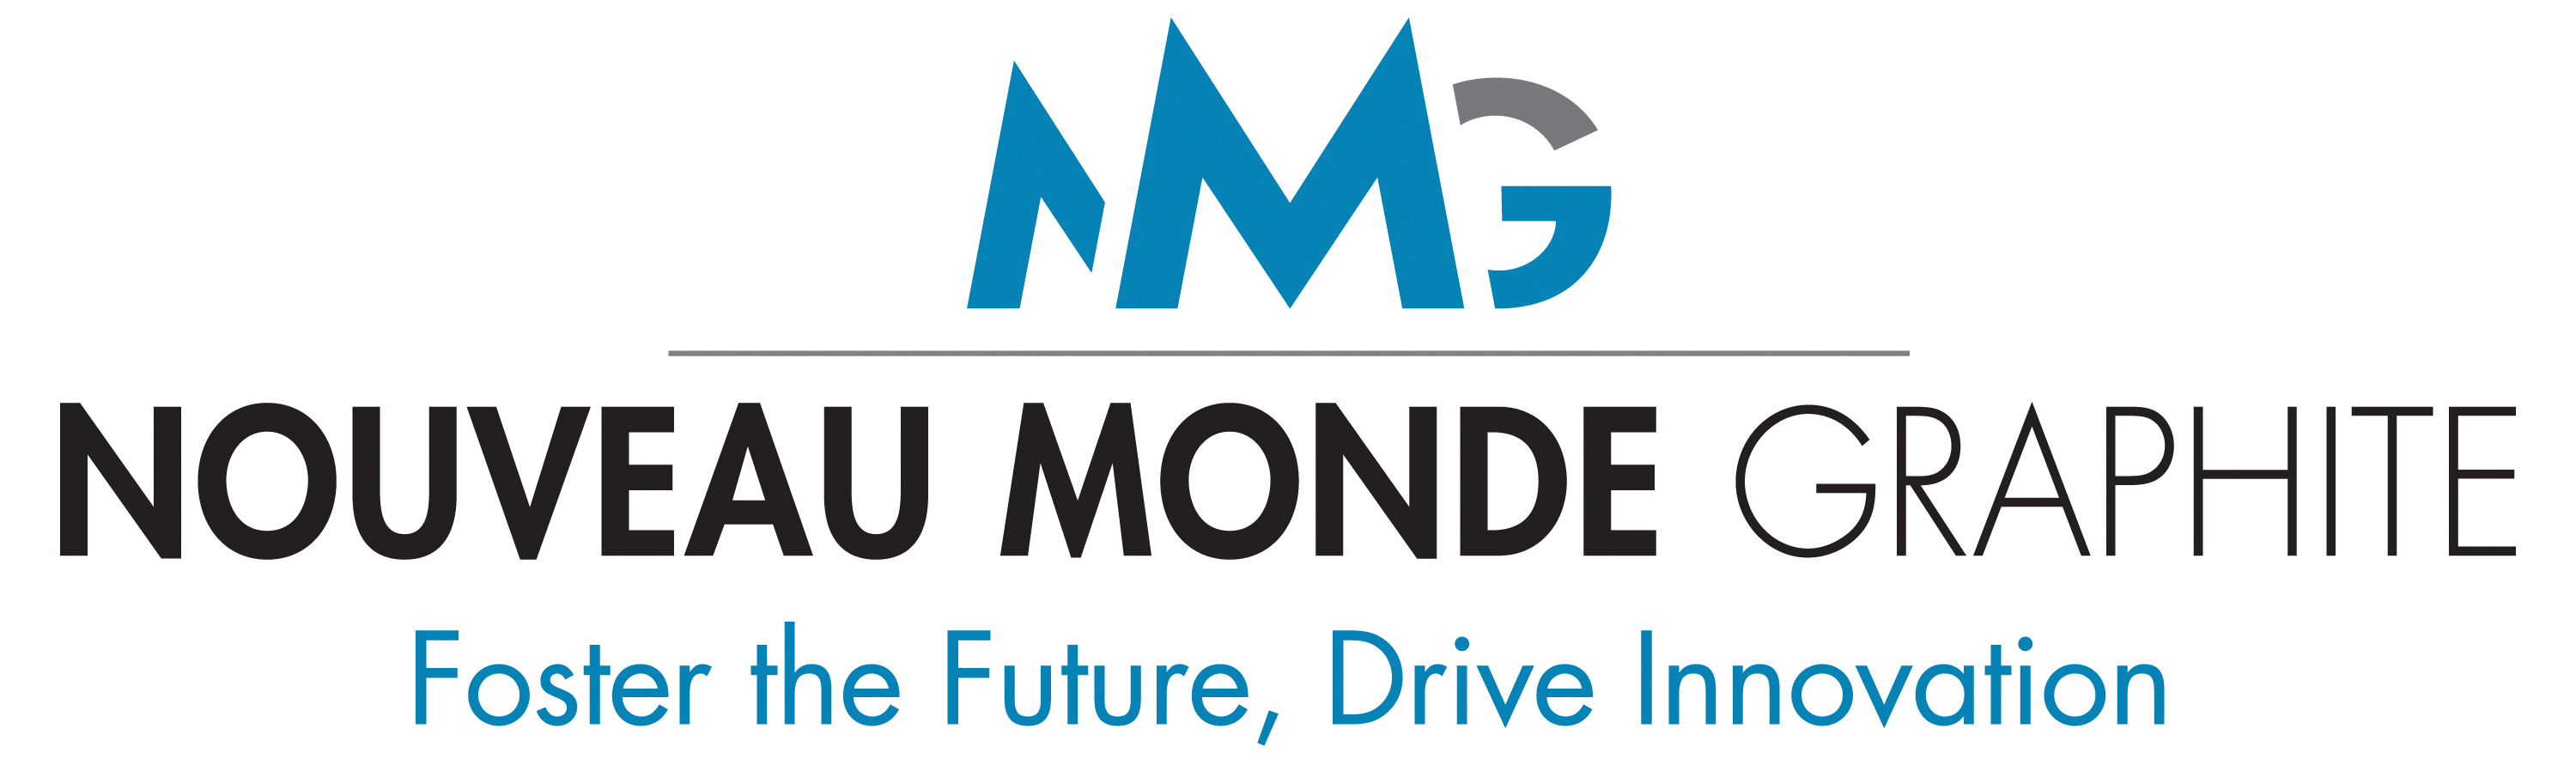 Nouveau Monde's Integrated Battery Anode Material Outperforms Leading Commercial Producers